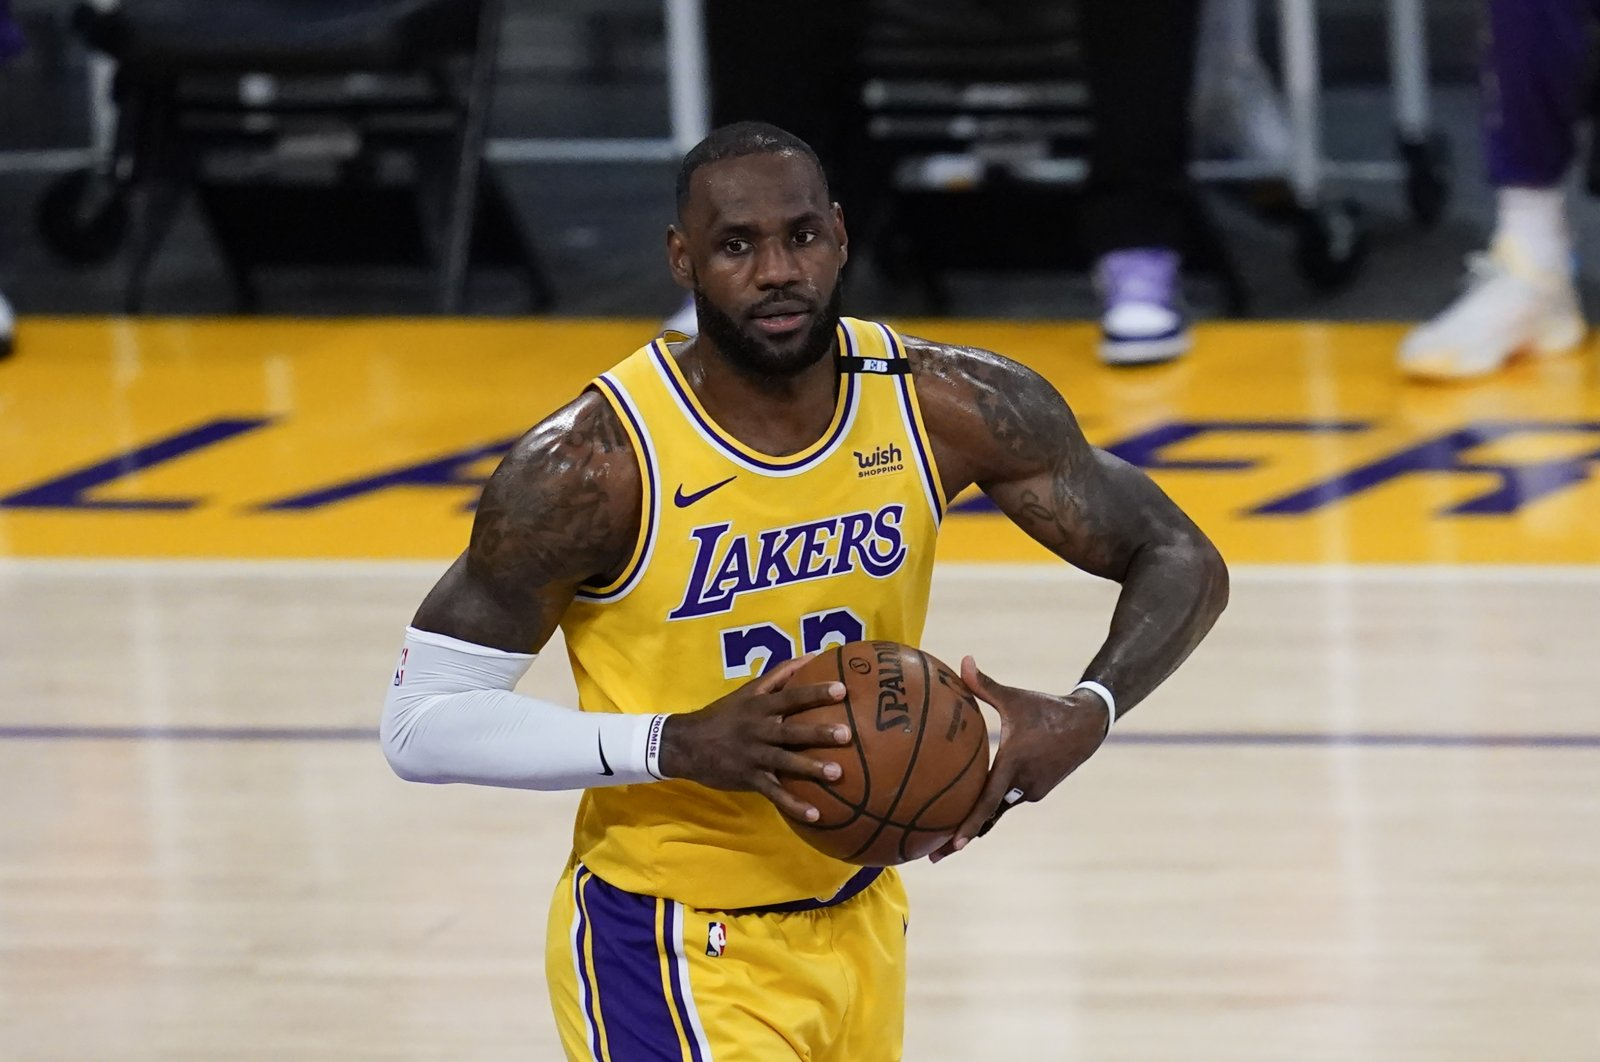 Los Angeles Lakers forward LeBron James controls the ball during an NBA playoff game against the Phoenix Suns, Jun 3, 2021, Los Angeles, U.S. (AP Photo)